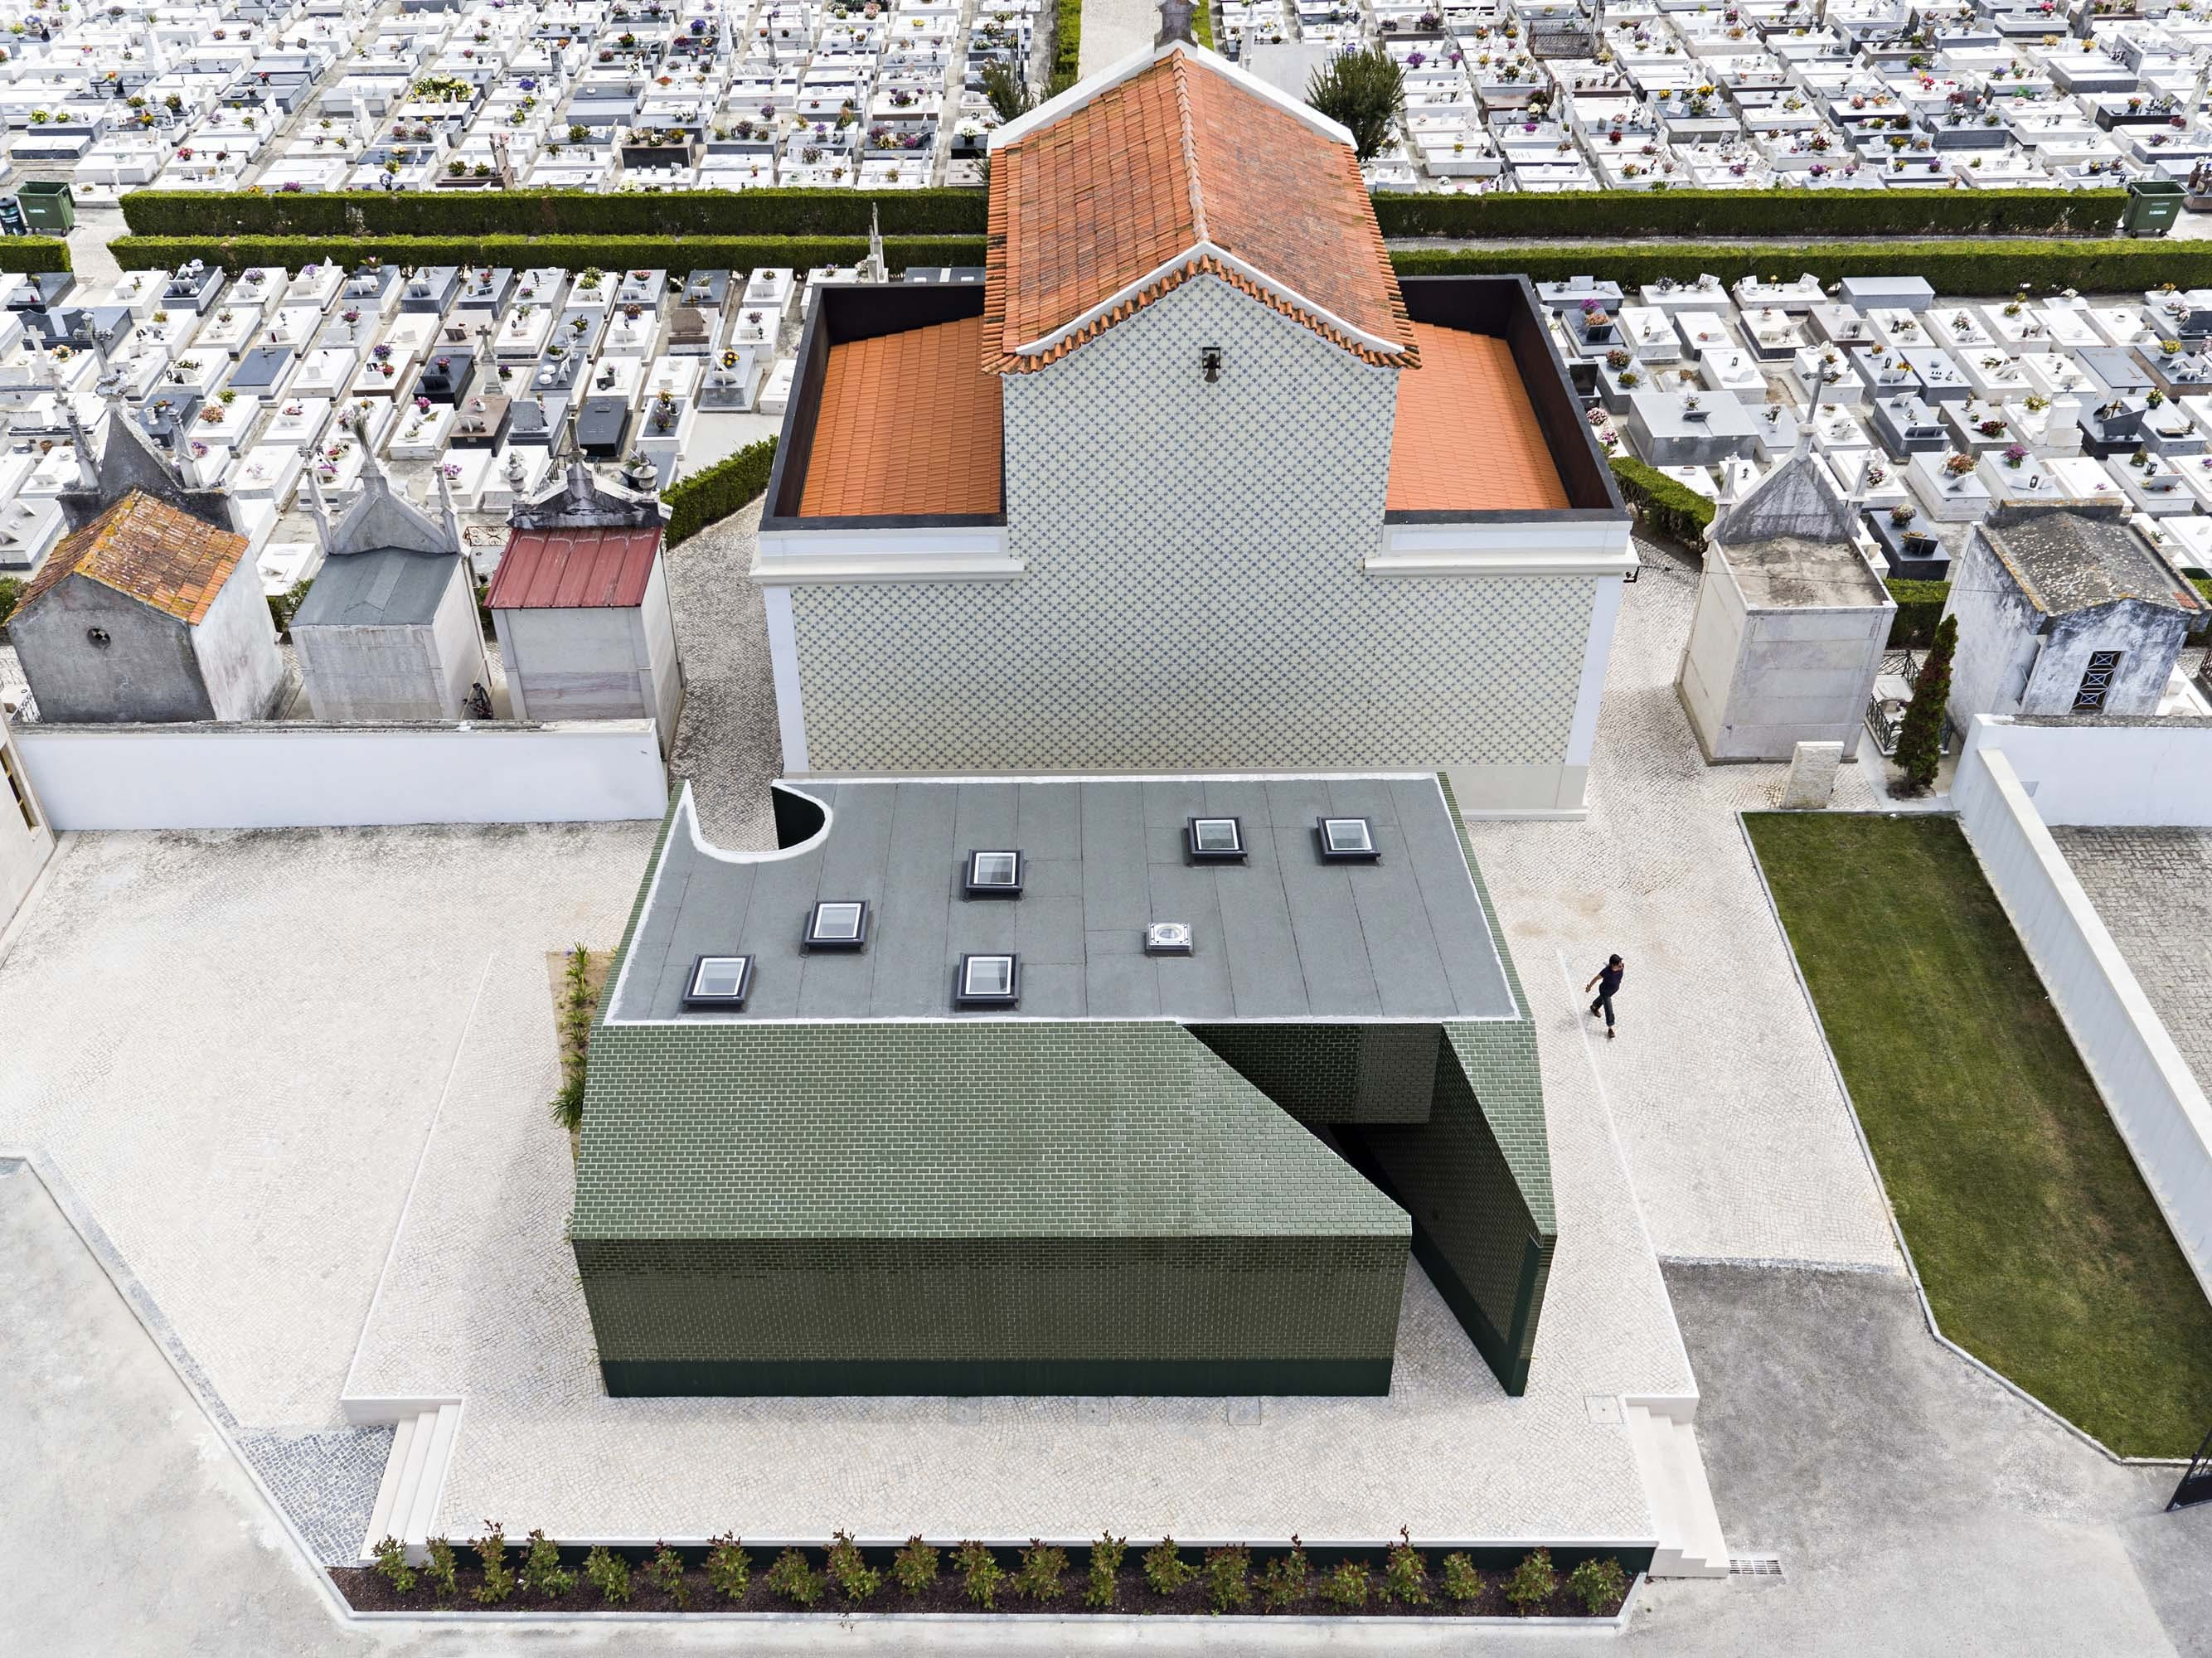 m2.senos creates a public restroom coated in green ceramic tile for ...